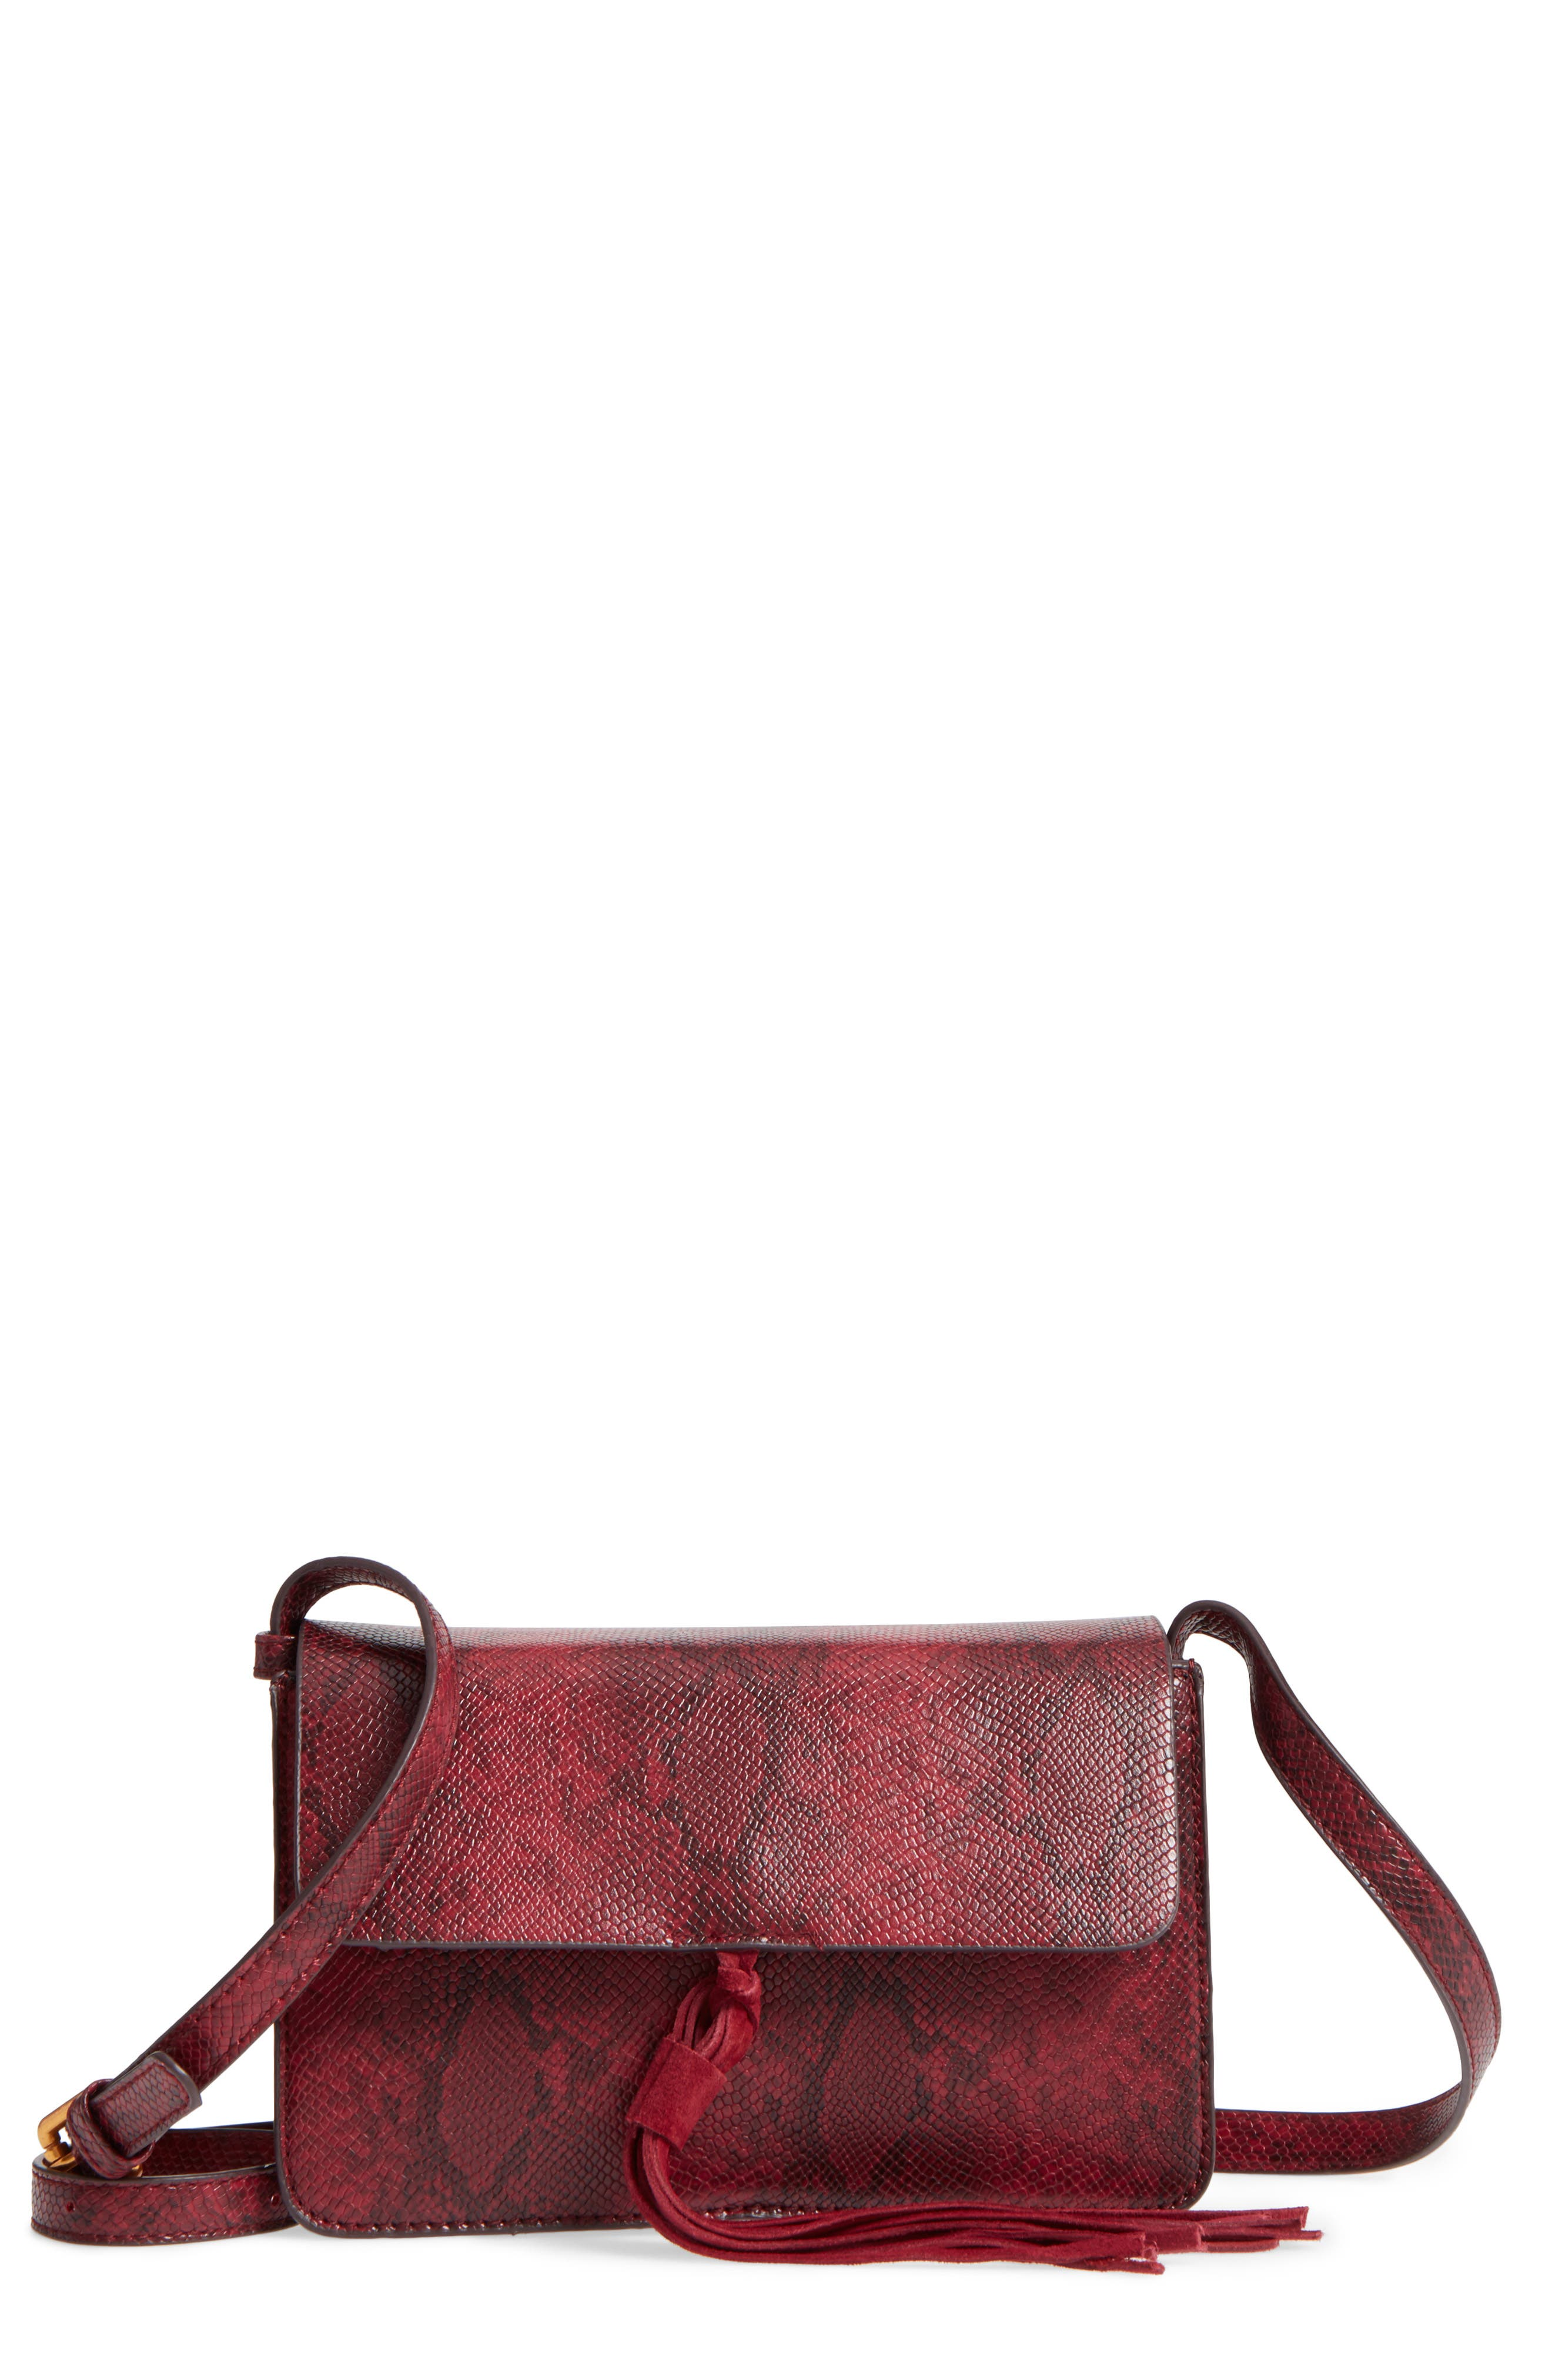 Main Image - Street Level Snake Embossed Faux Leather Crossbody Bag